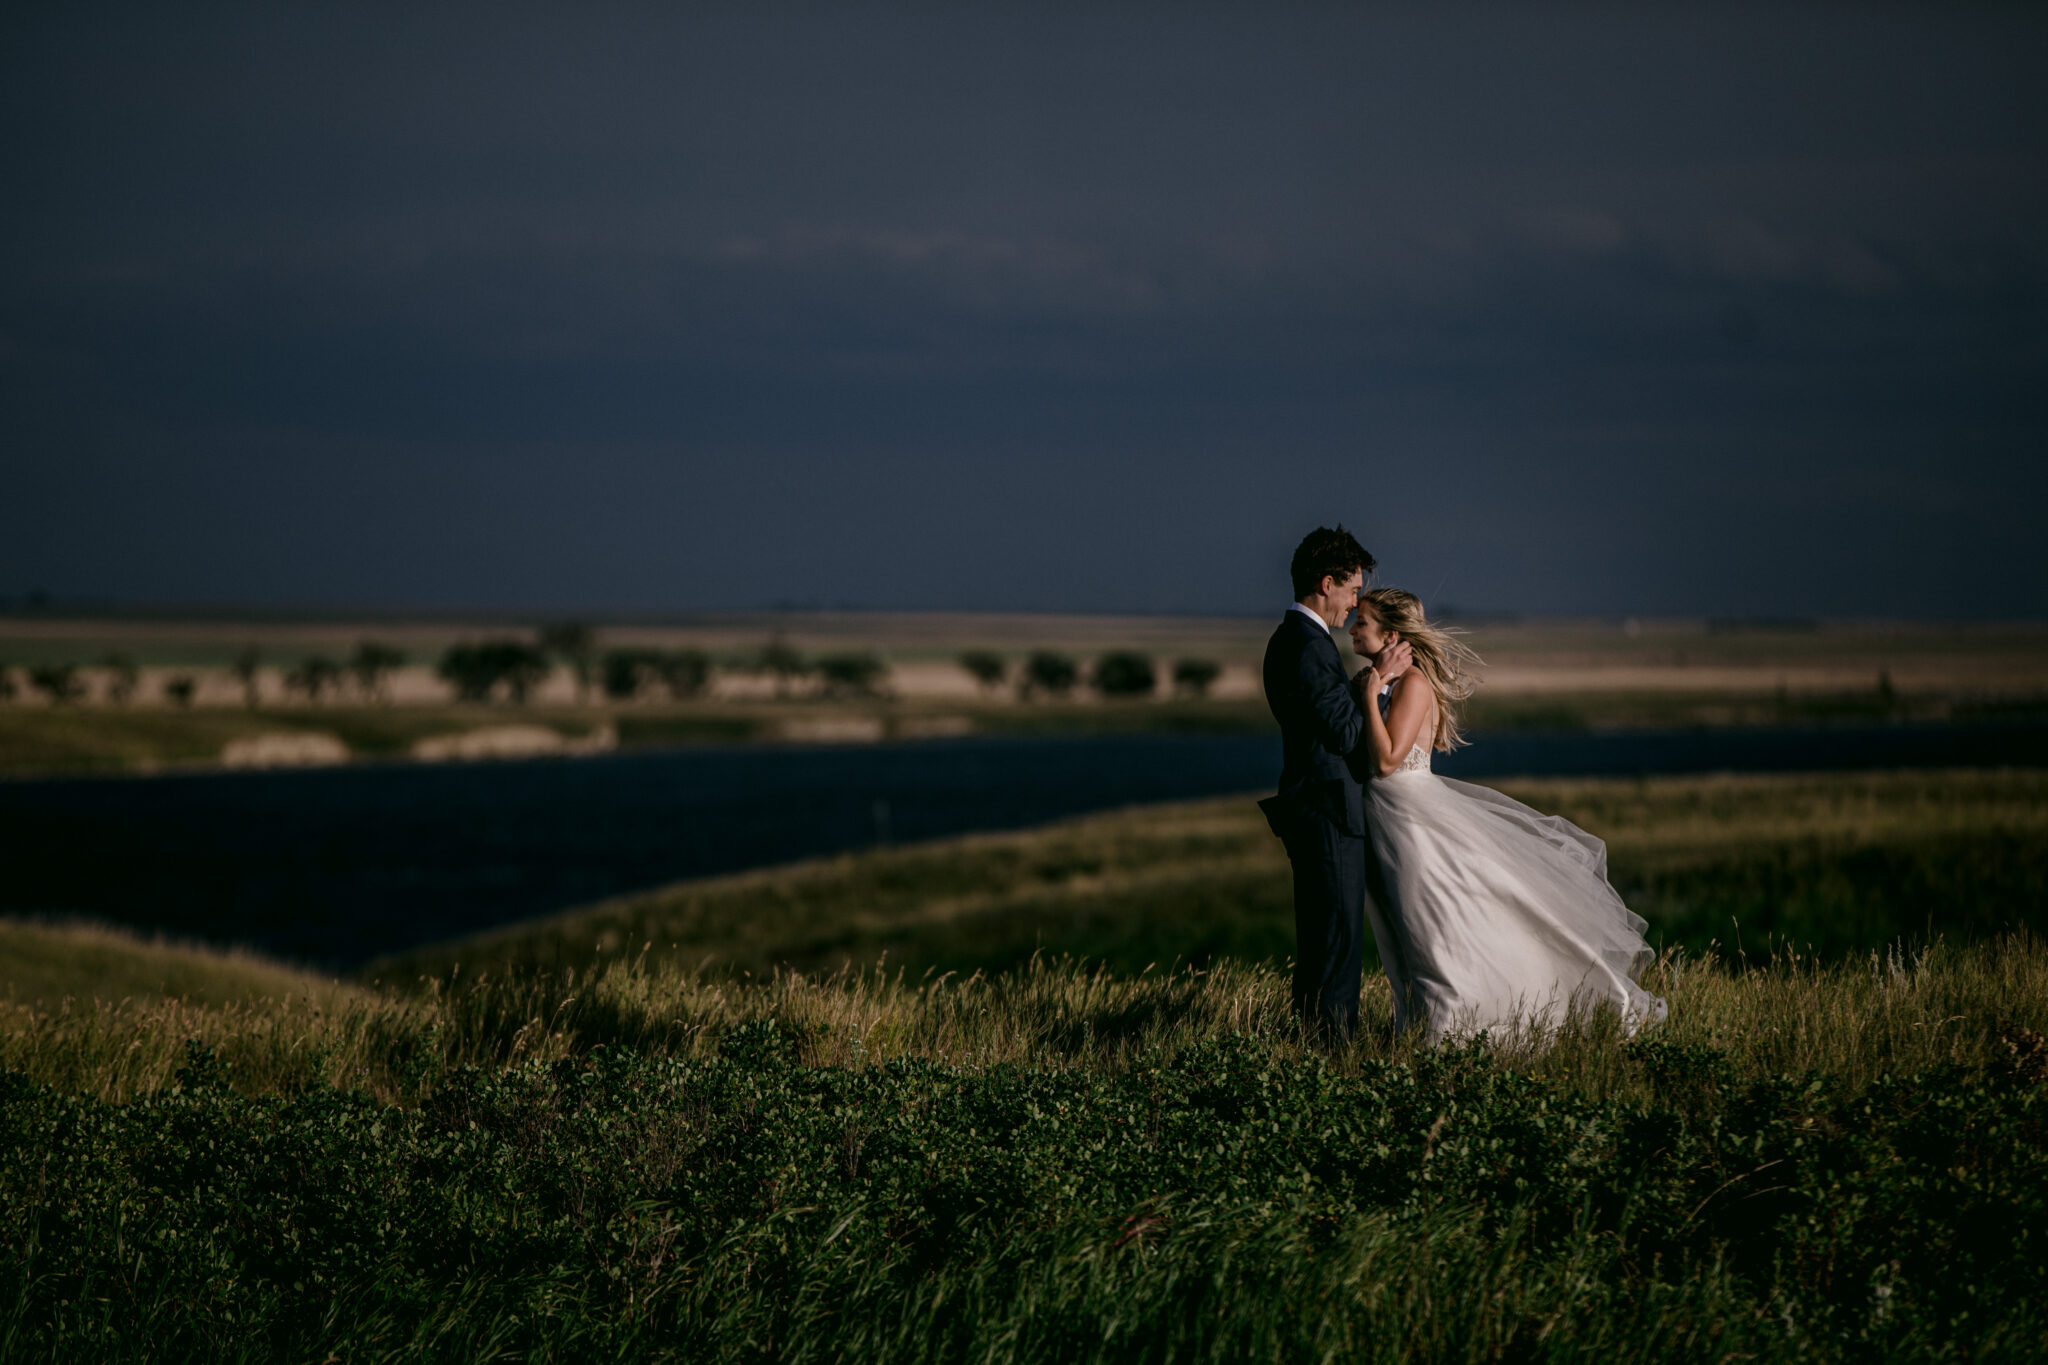 Alberta-Elopement-Packages